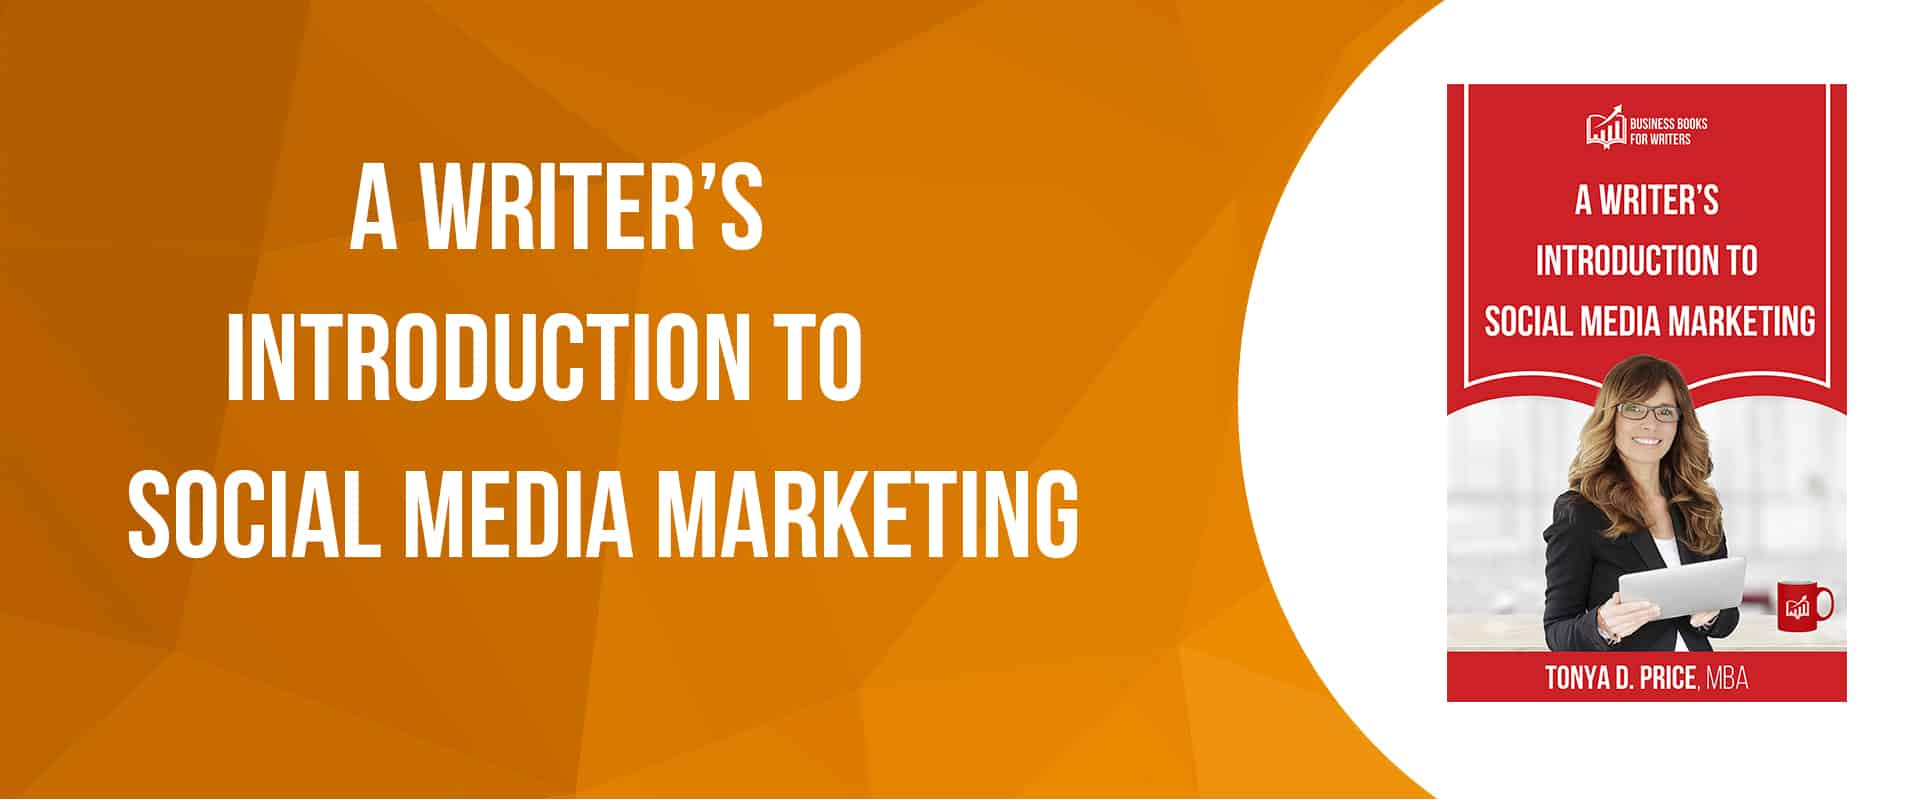 A Writer's Introeduction to Social Media Marketing book cover on a slider